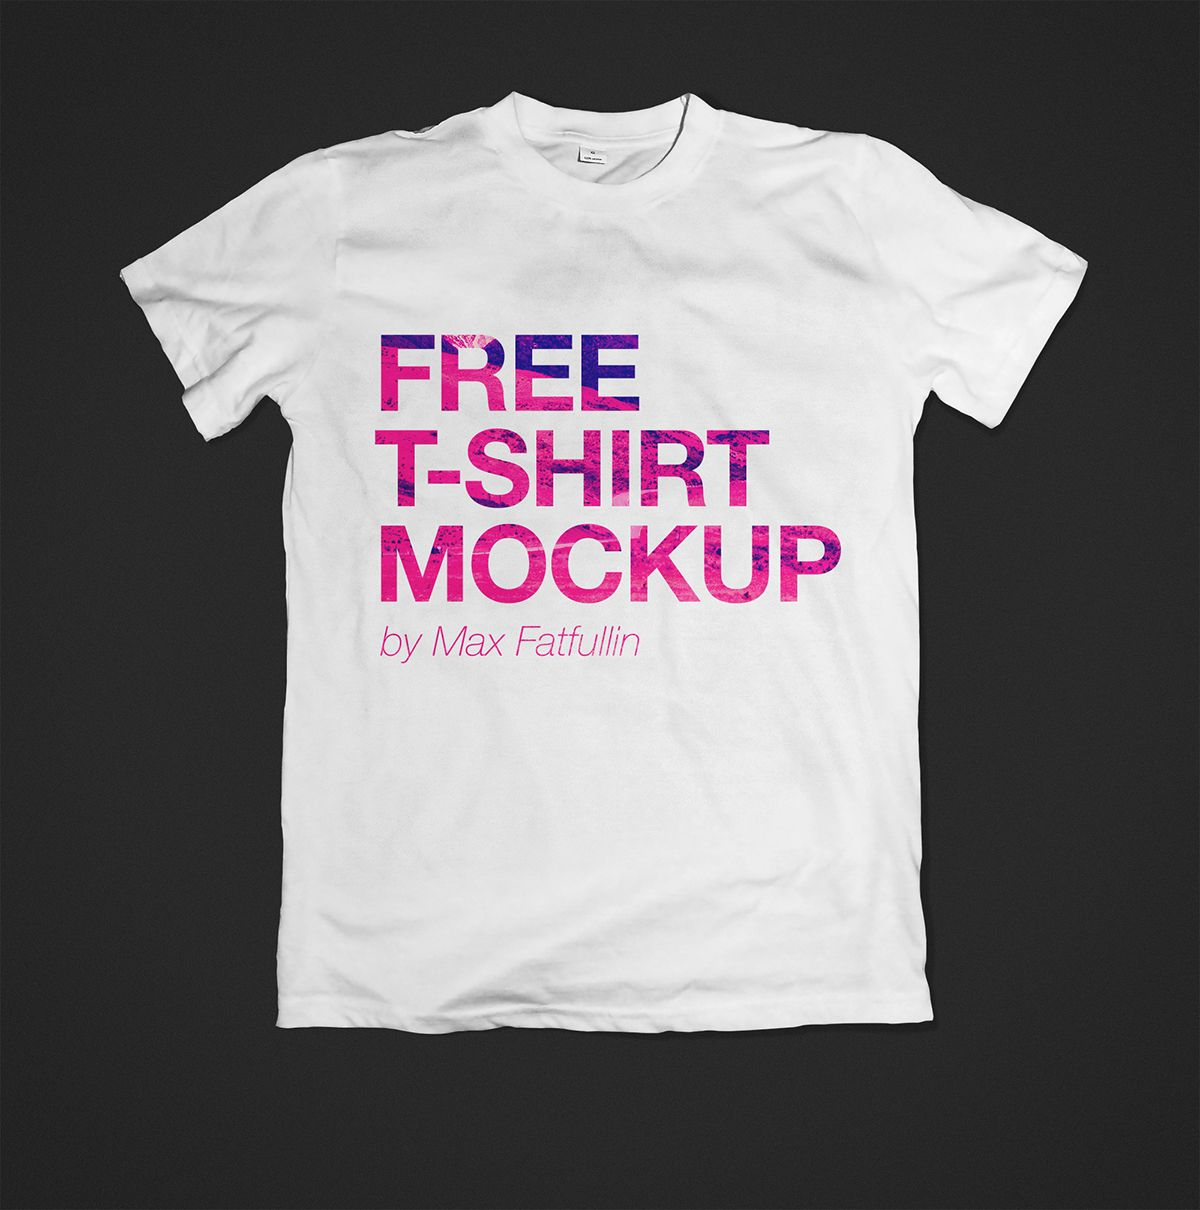 100 T-shirt templates for download that are bloody awesome | Mockup ...